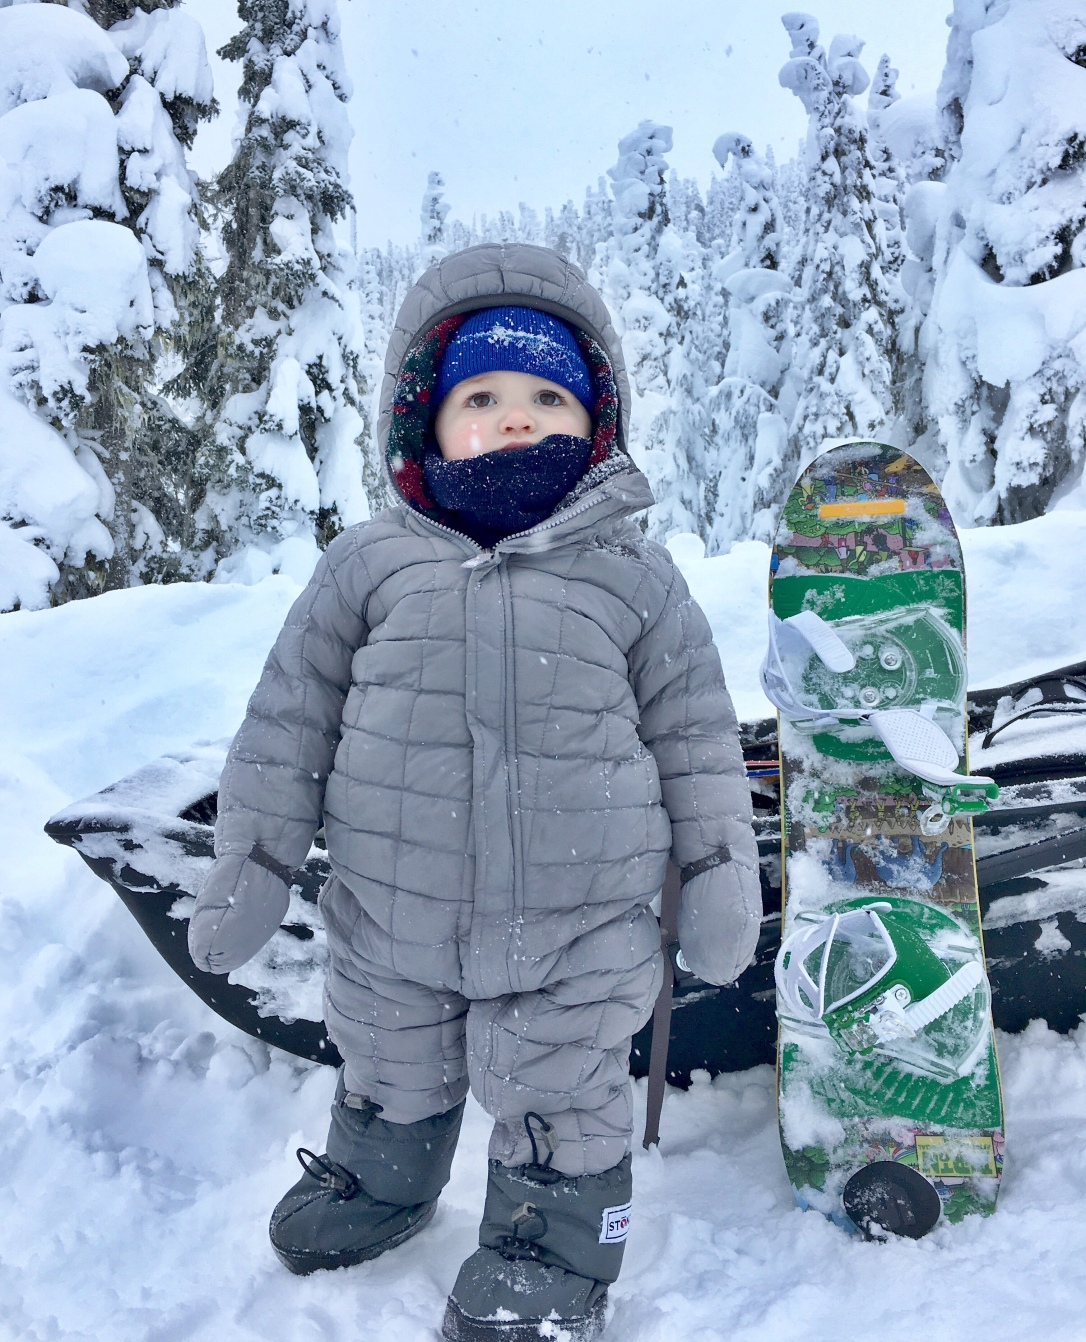 LIttle snowboarder